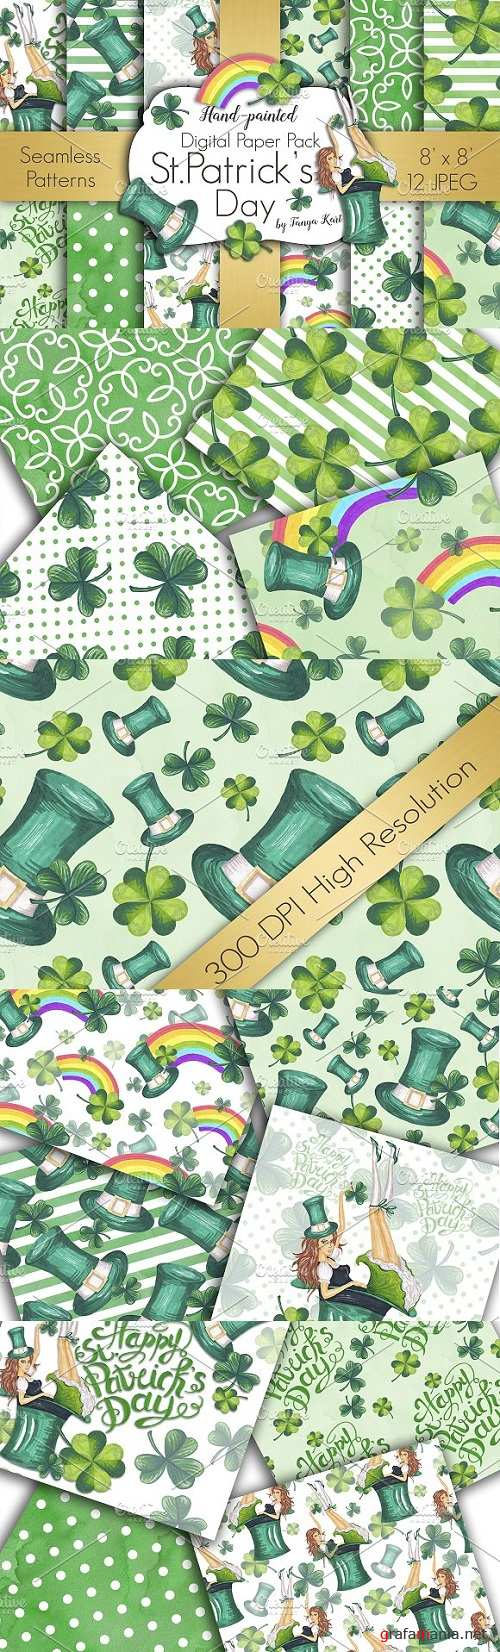 St.Patrick's Day Digital Papers Pack - 1196493